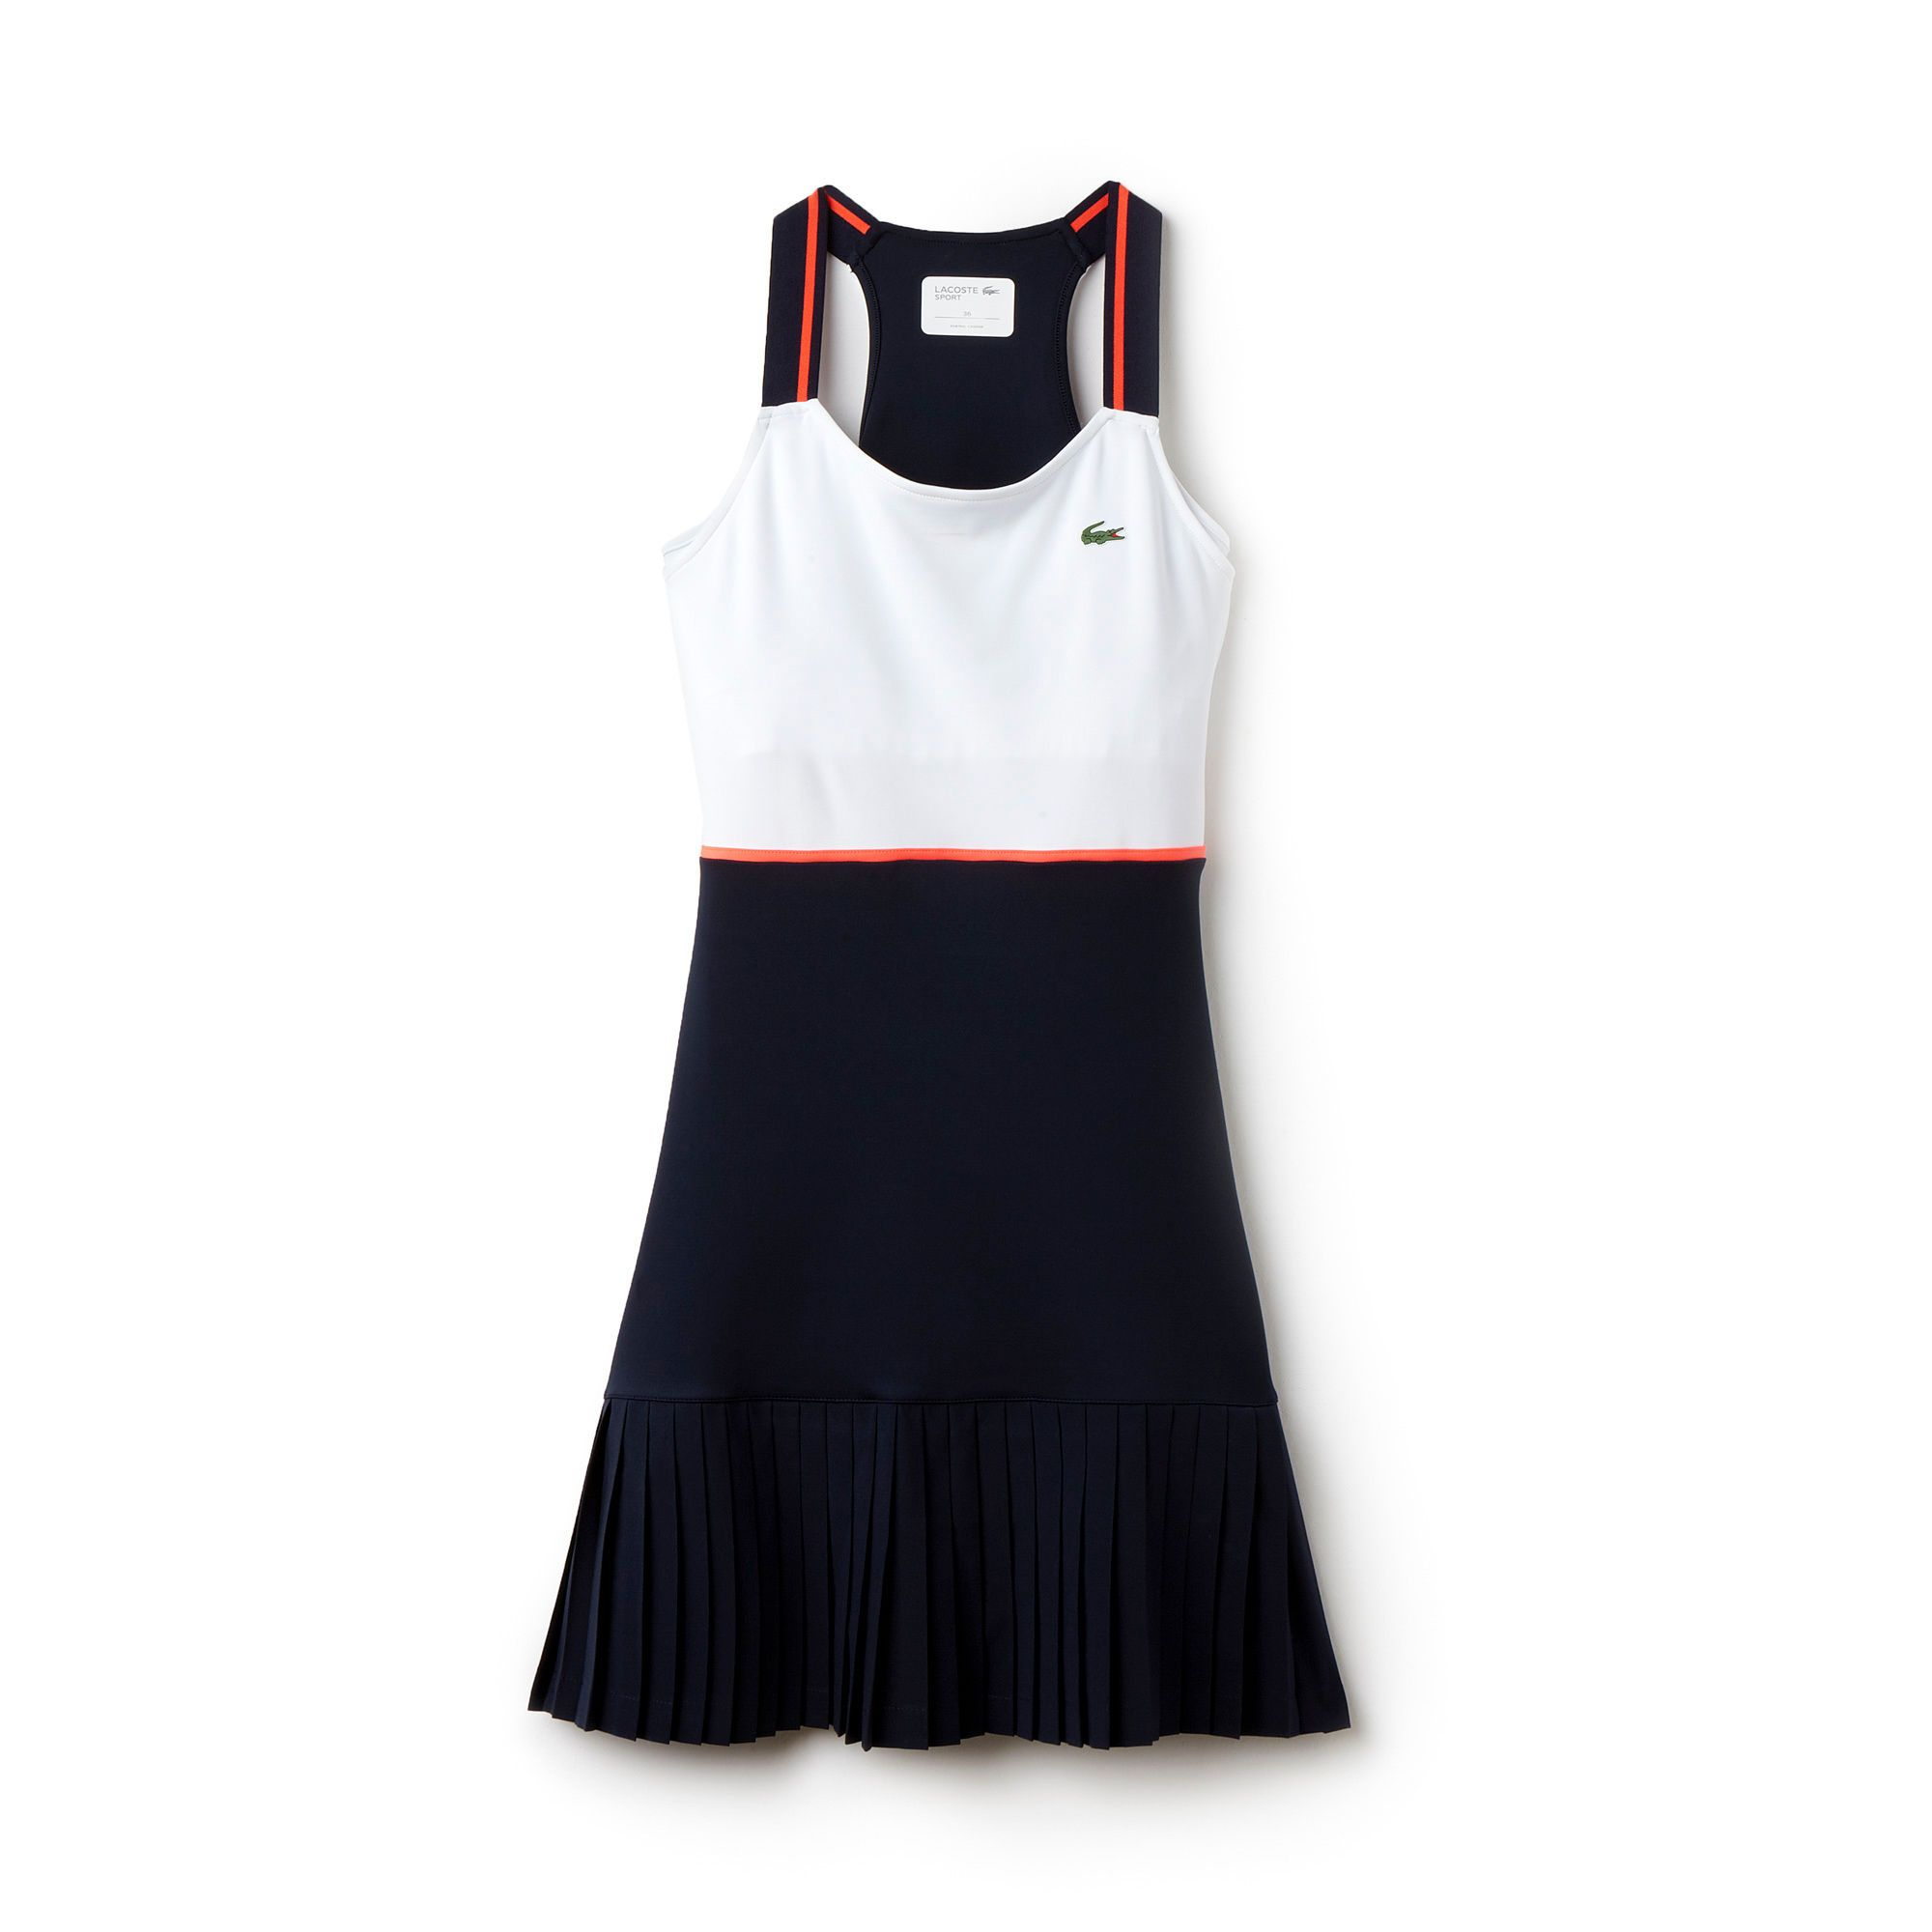 With Pretty Pleats On The Skirt This Colorblock Lacoste Sport Racerback Tennis Dress In Technical Jersey Womens Tennis Dress Tennis Dress Lacoste Tennis Dress